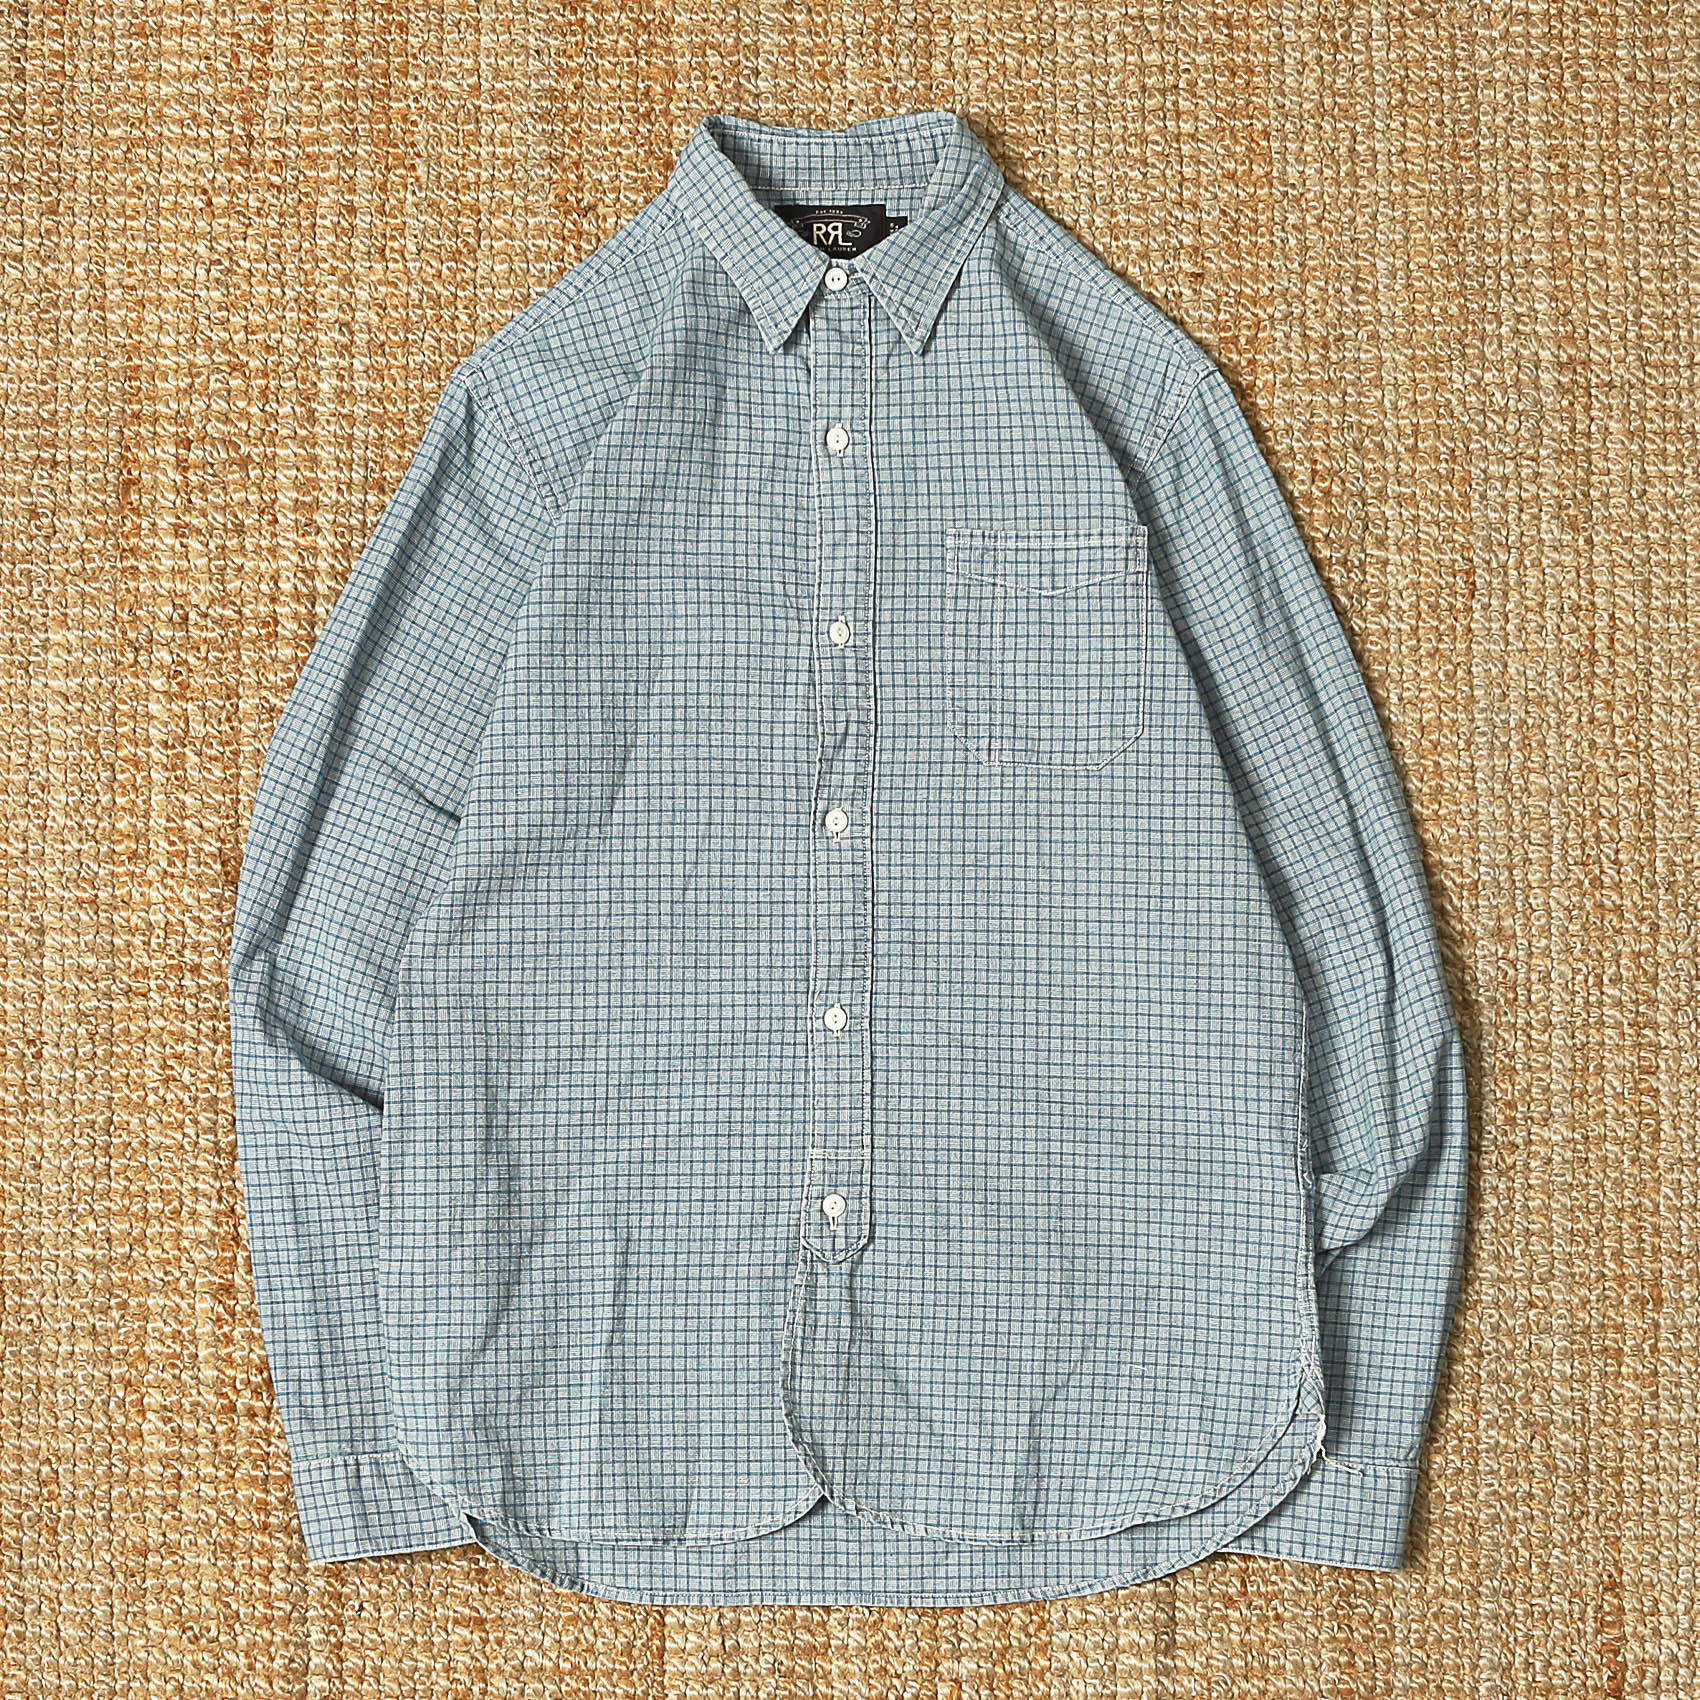 RRL CHECK SHIRT - BLUE